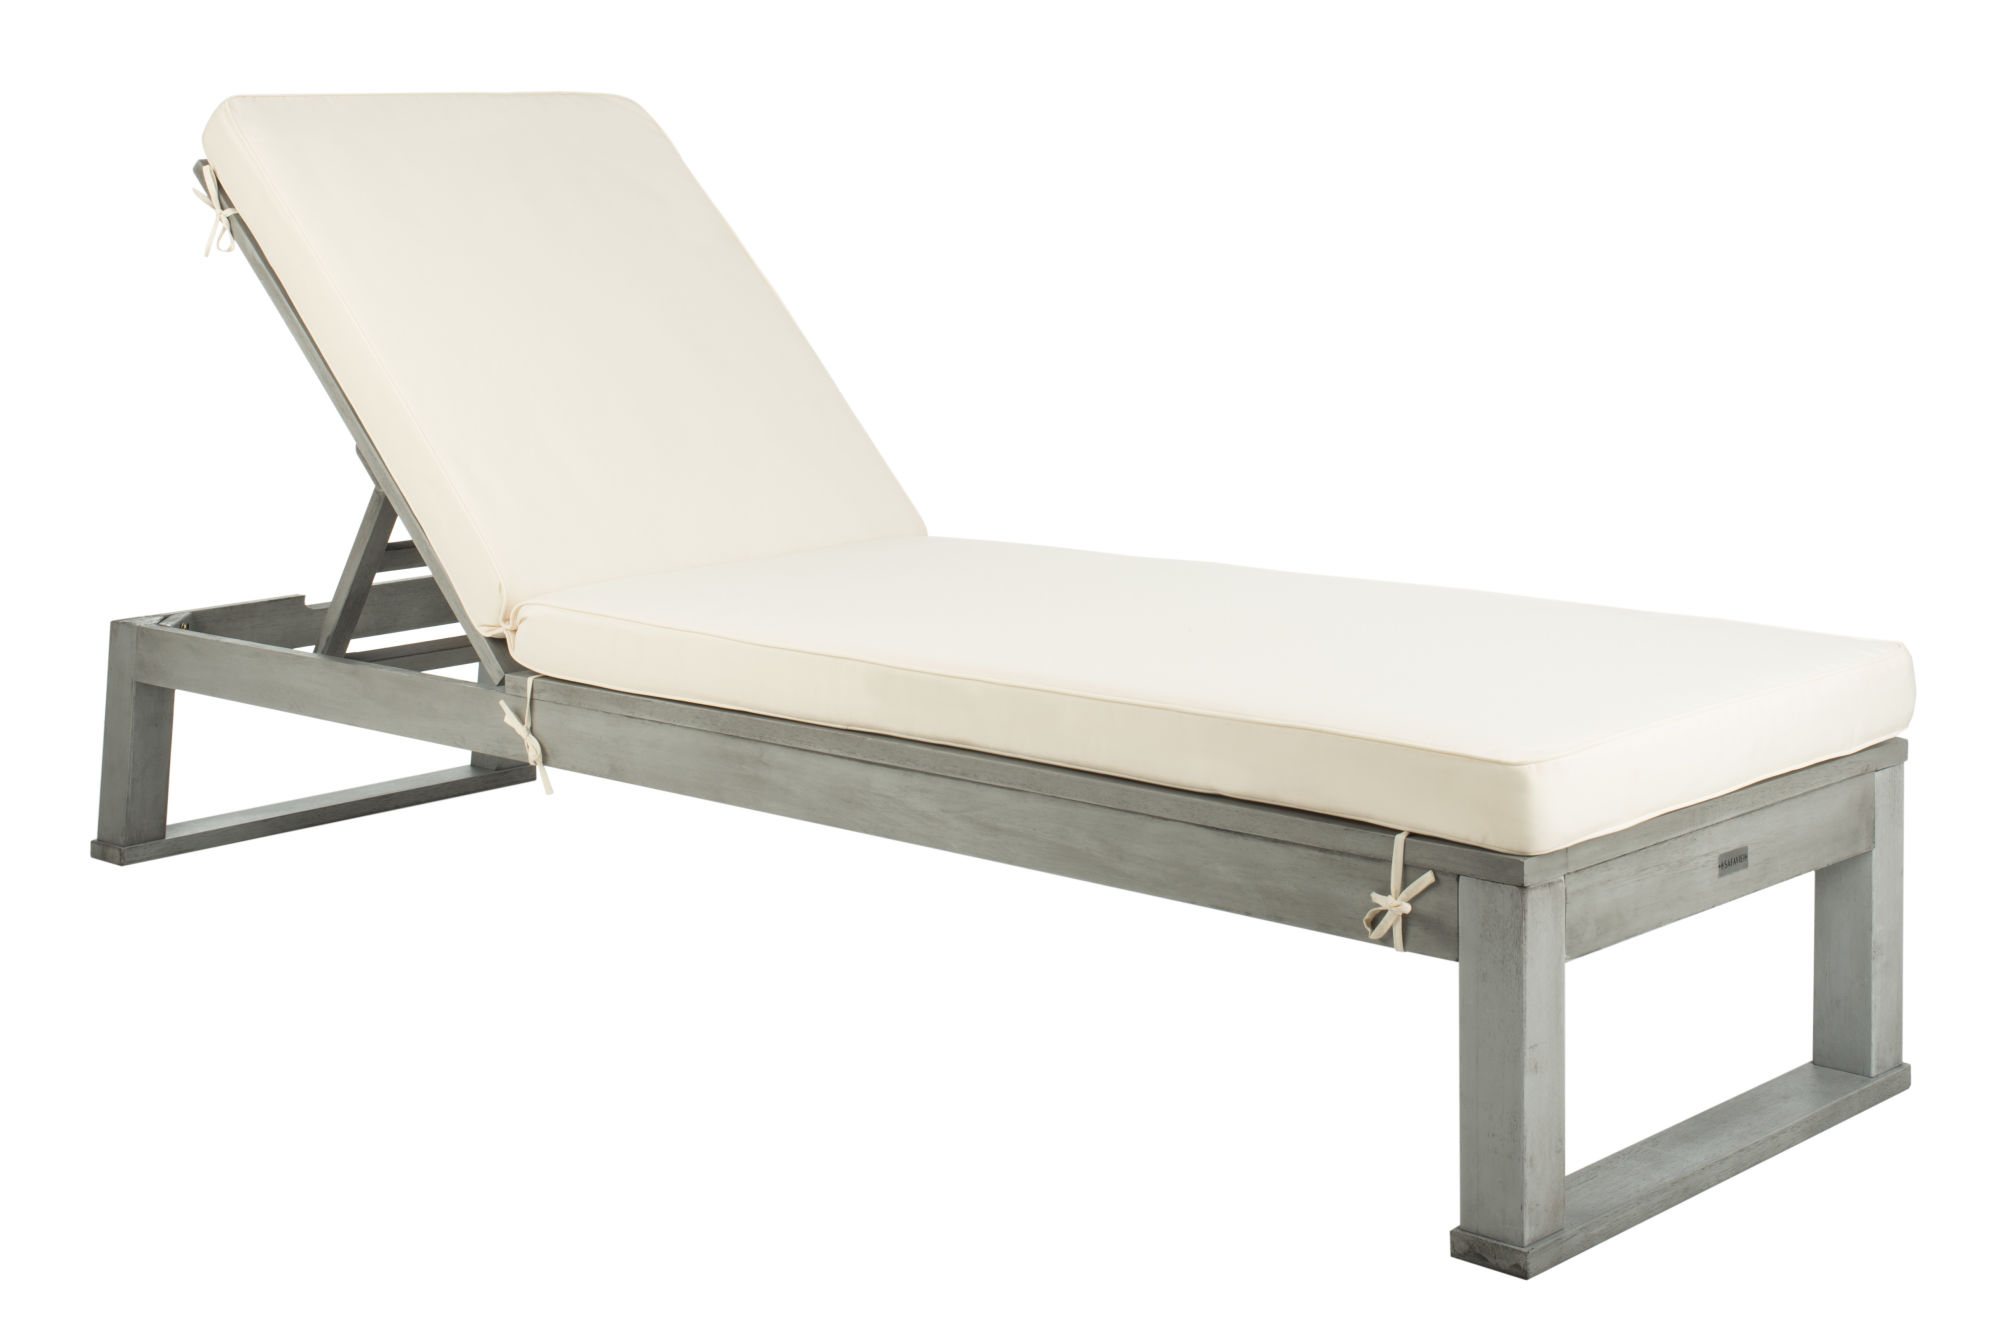 Solano Sunlounger on Safavieh Outdoor Living Solano Sunlounger id=62773